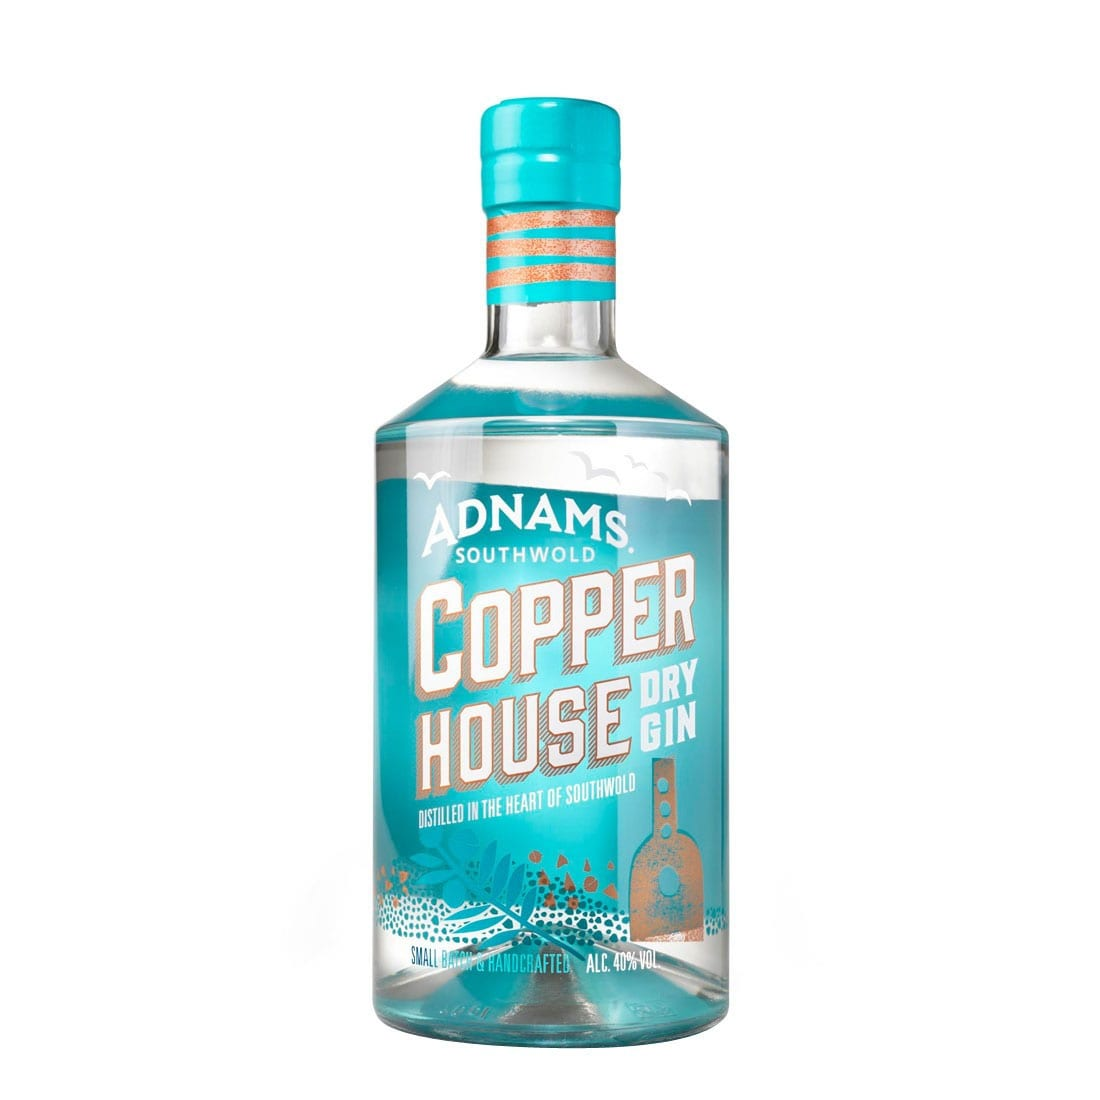 Copper House Gin